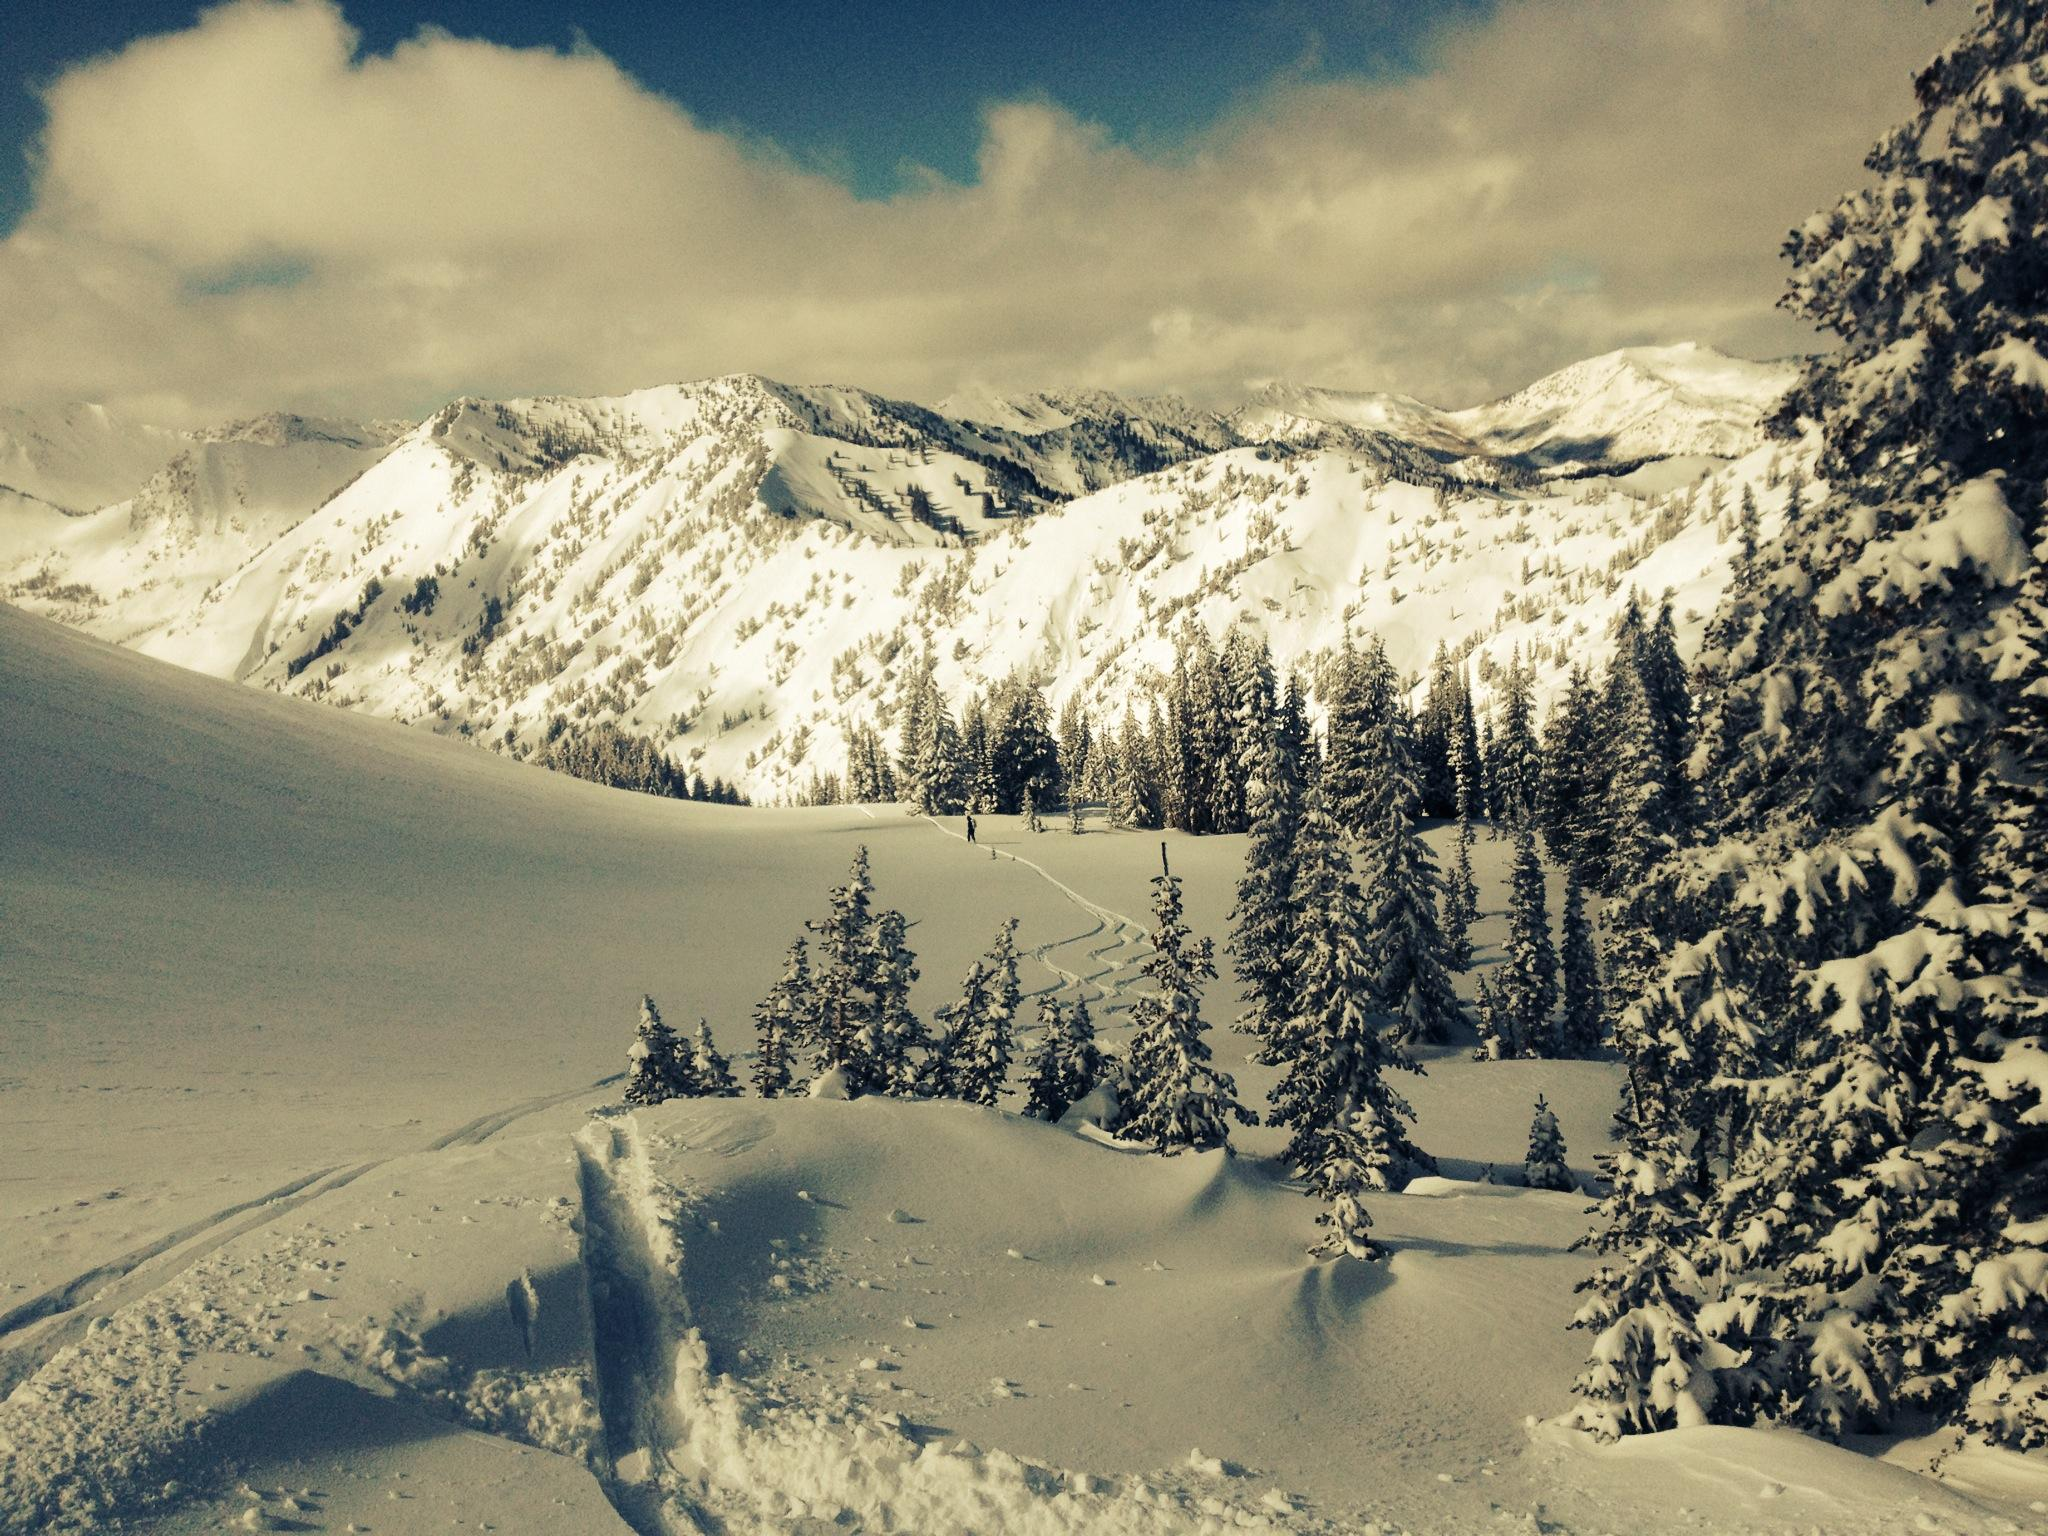 weekend storm gives welcomed boost to utah snowpack   kuer 90.1